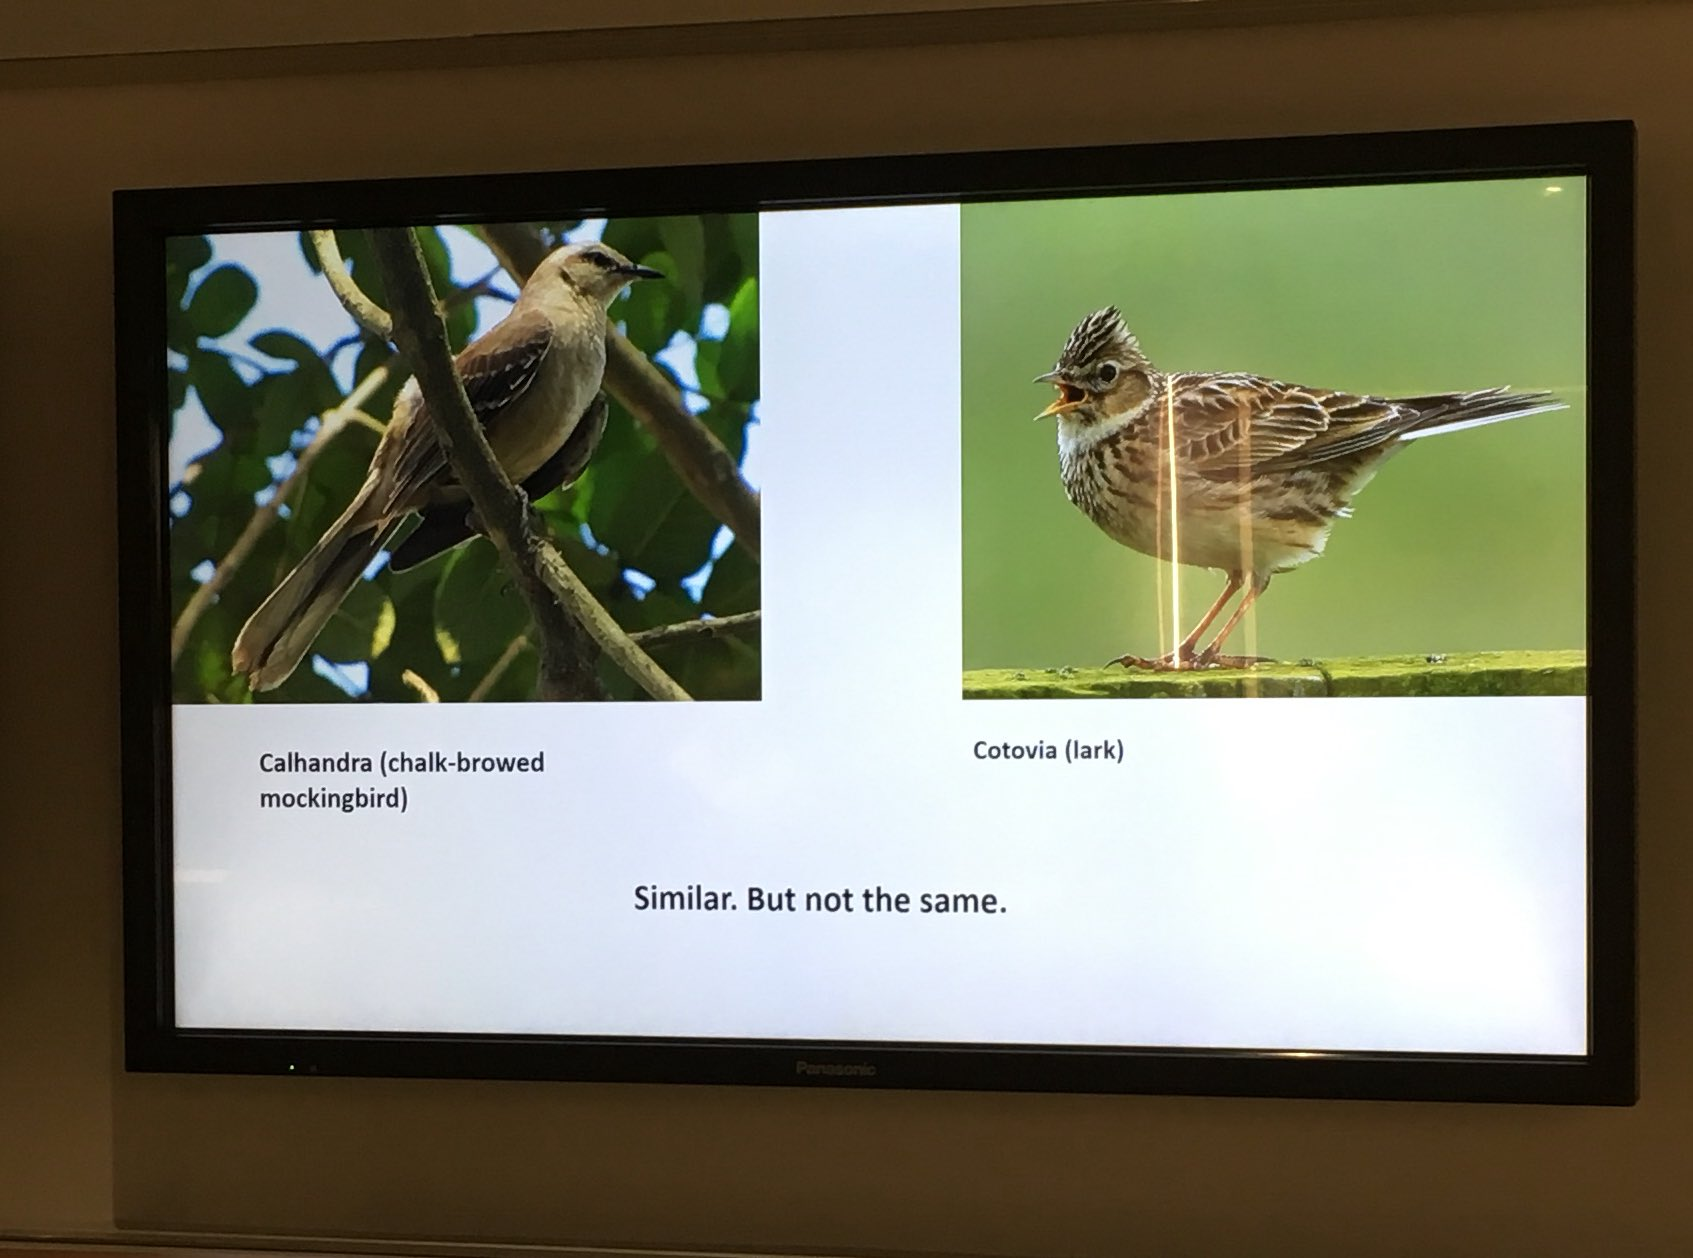 """Botelho on substituting different bird species for """"lark"""" in his trans. of Romeo & Juliet. #gwdh17 THIS TALK 😍 https://t.co/9Ozmhd27sN"""